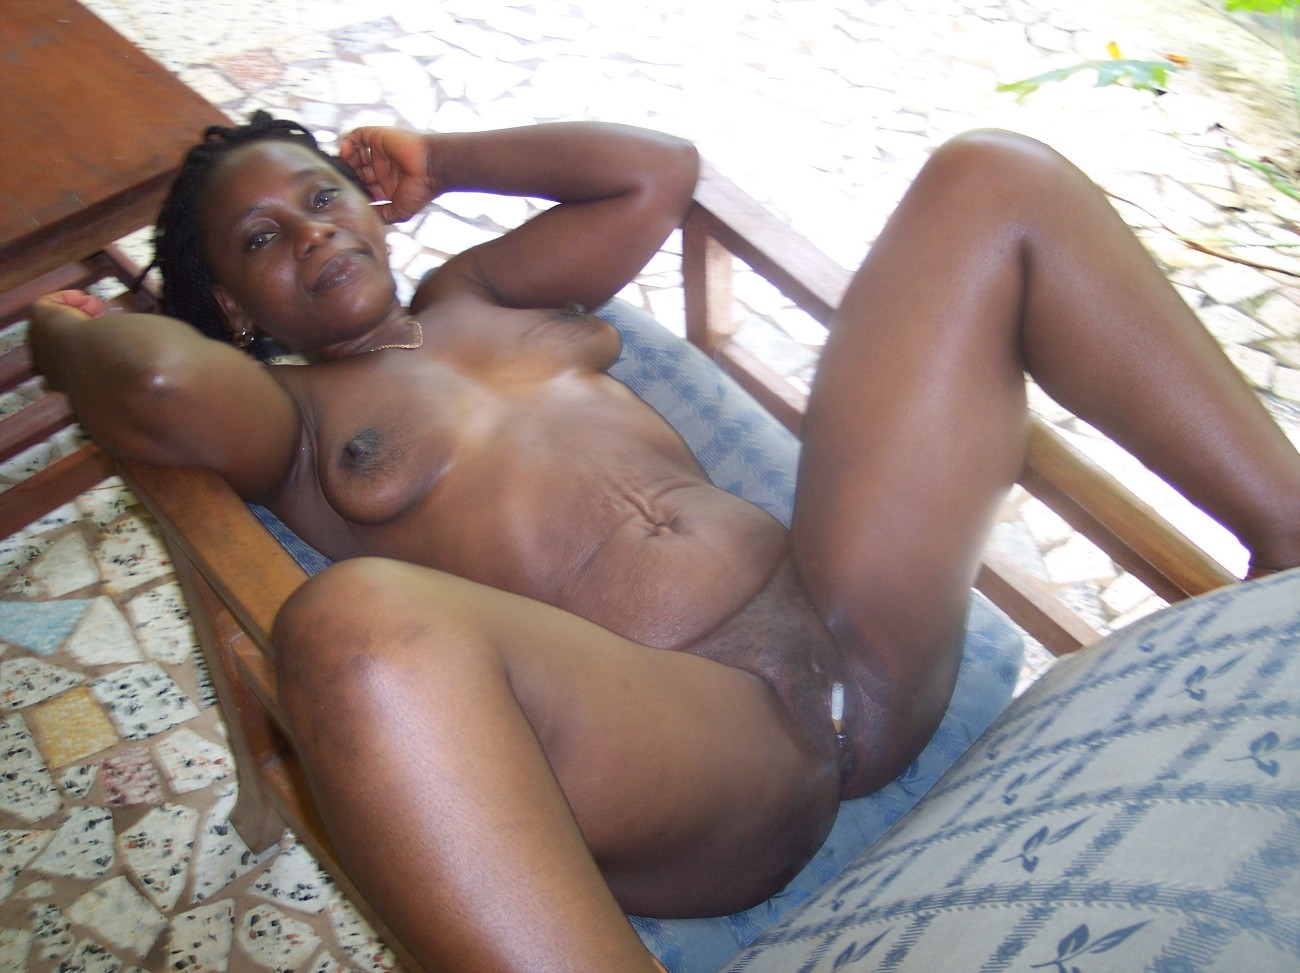 Ghana girl porn video - Hot Nude